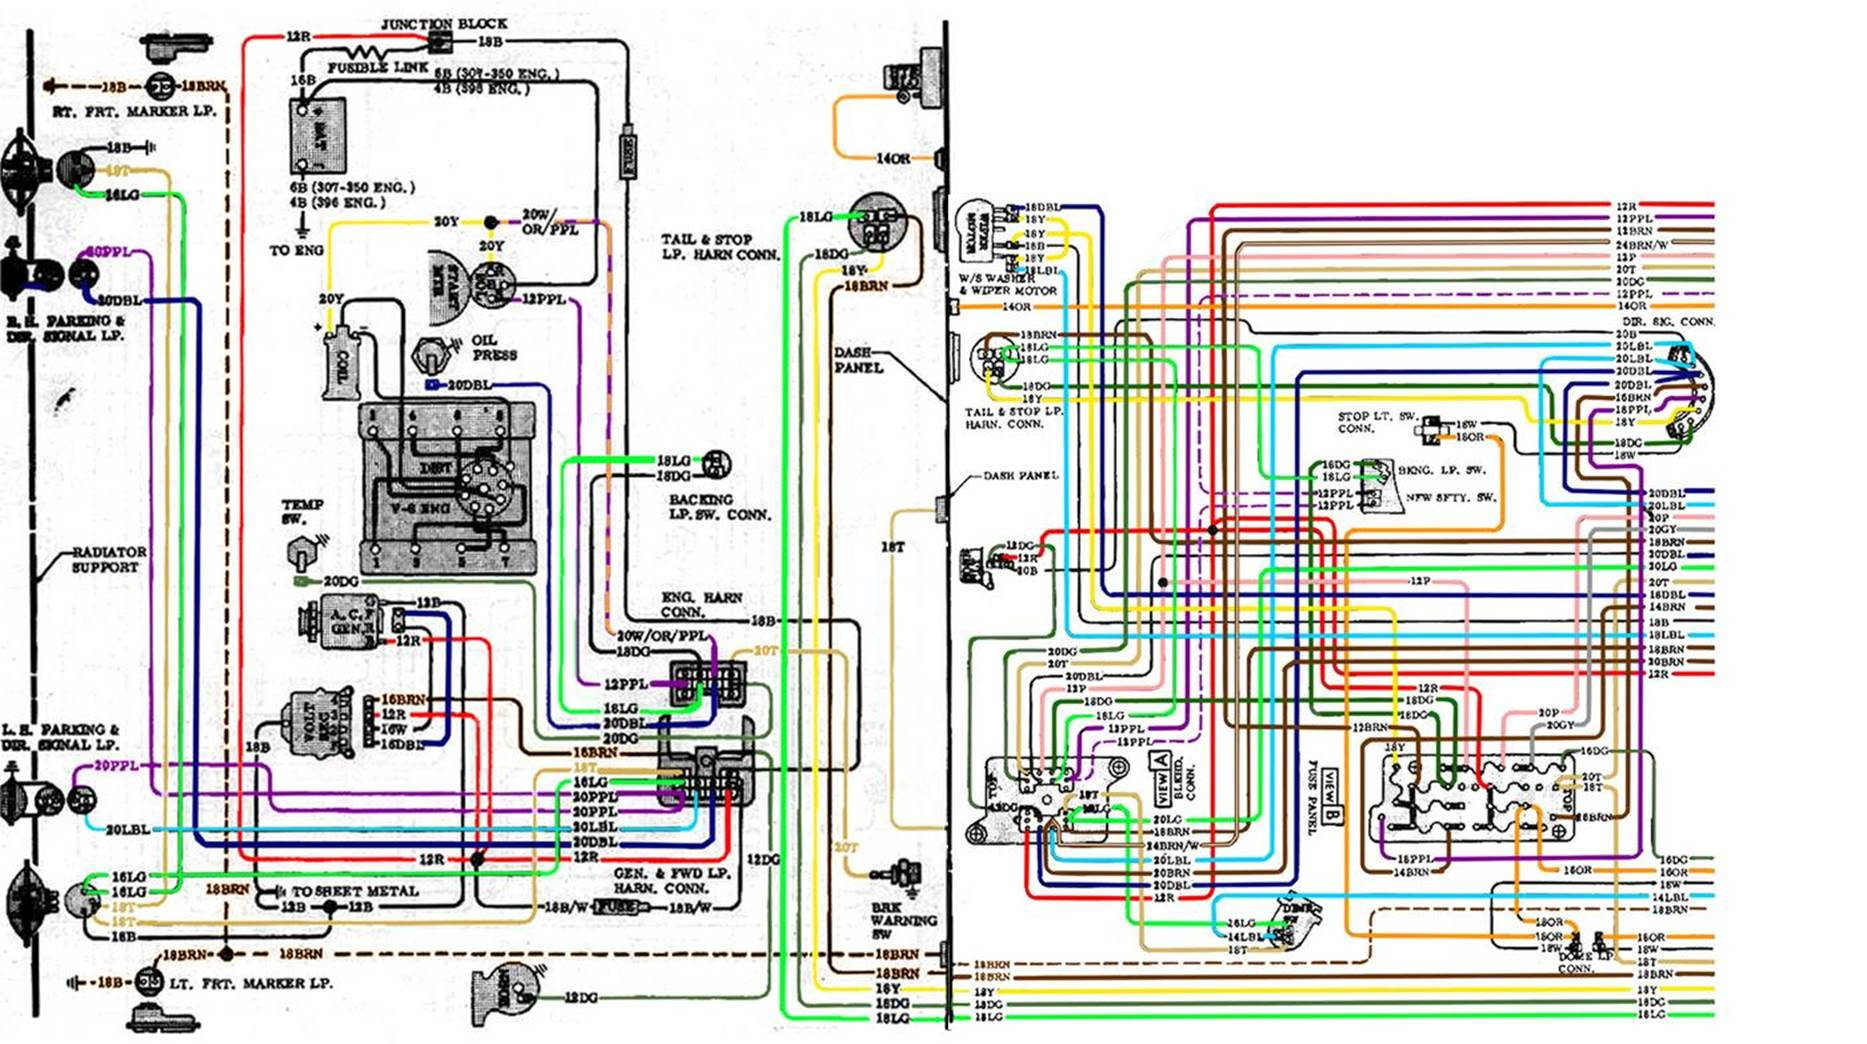 70 Chevelle Wiring Harness | Electronic Schematics collections on 1966 chevelle wiring diagram, 1972 chevelle heater wiring diagram, 70 chevelle alternator wiring diagram, 70 chevelle brake line diagram, 70 chevelle cowl induction assembly, 1985 el camino ignition wiring diagram, 1967 chevelle wiper motor wiring diagram, 1970 challenger wiring diagram, 1968 chevy chevelle wiring diagram, 1983 el camino vacuum diagram, 70 chevelle blower motor diagram, 1972 chevelle engine wiring diagram, 65 chevelle wiring diagram, 67 chevelle horn diagram, 1999 taurus wiring diagram, 68 chevelle wiring diagram, 1969 chevelle wiring diagram, 1964 chevelle wiring diagram, 1970 chevelle wiring diagram, 1965 chevrolet wiring diagram,